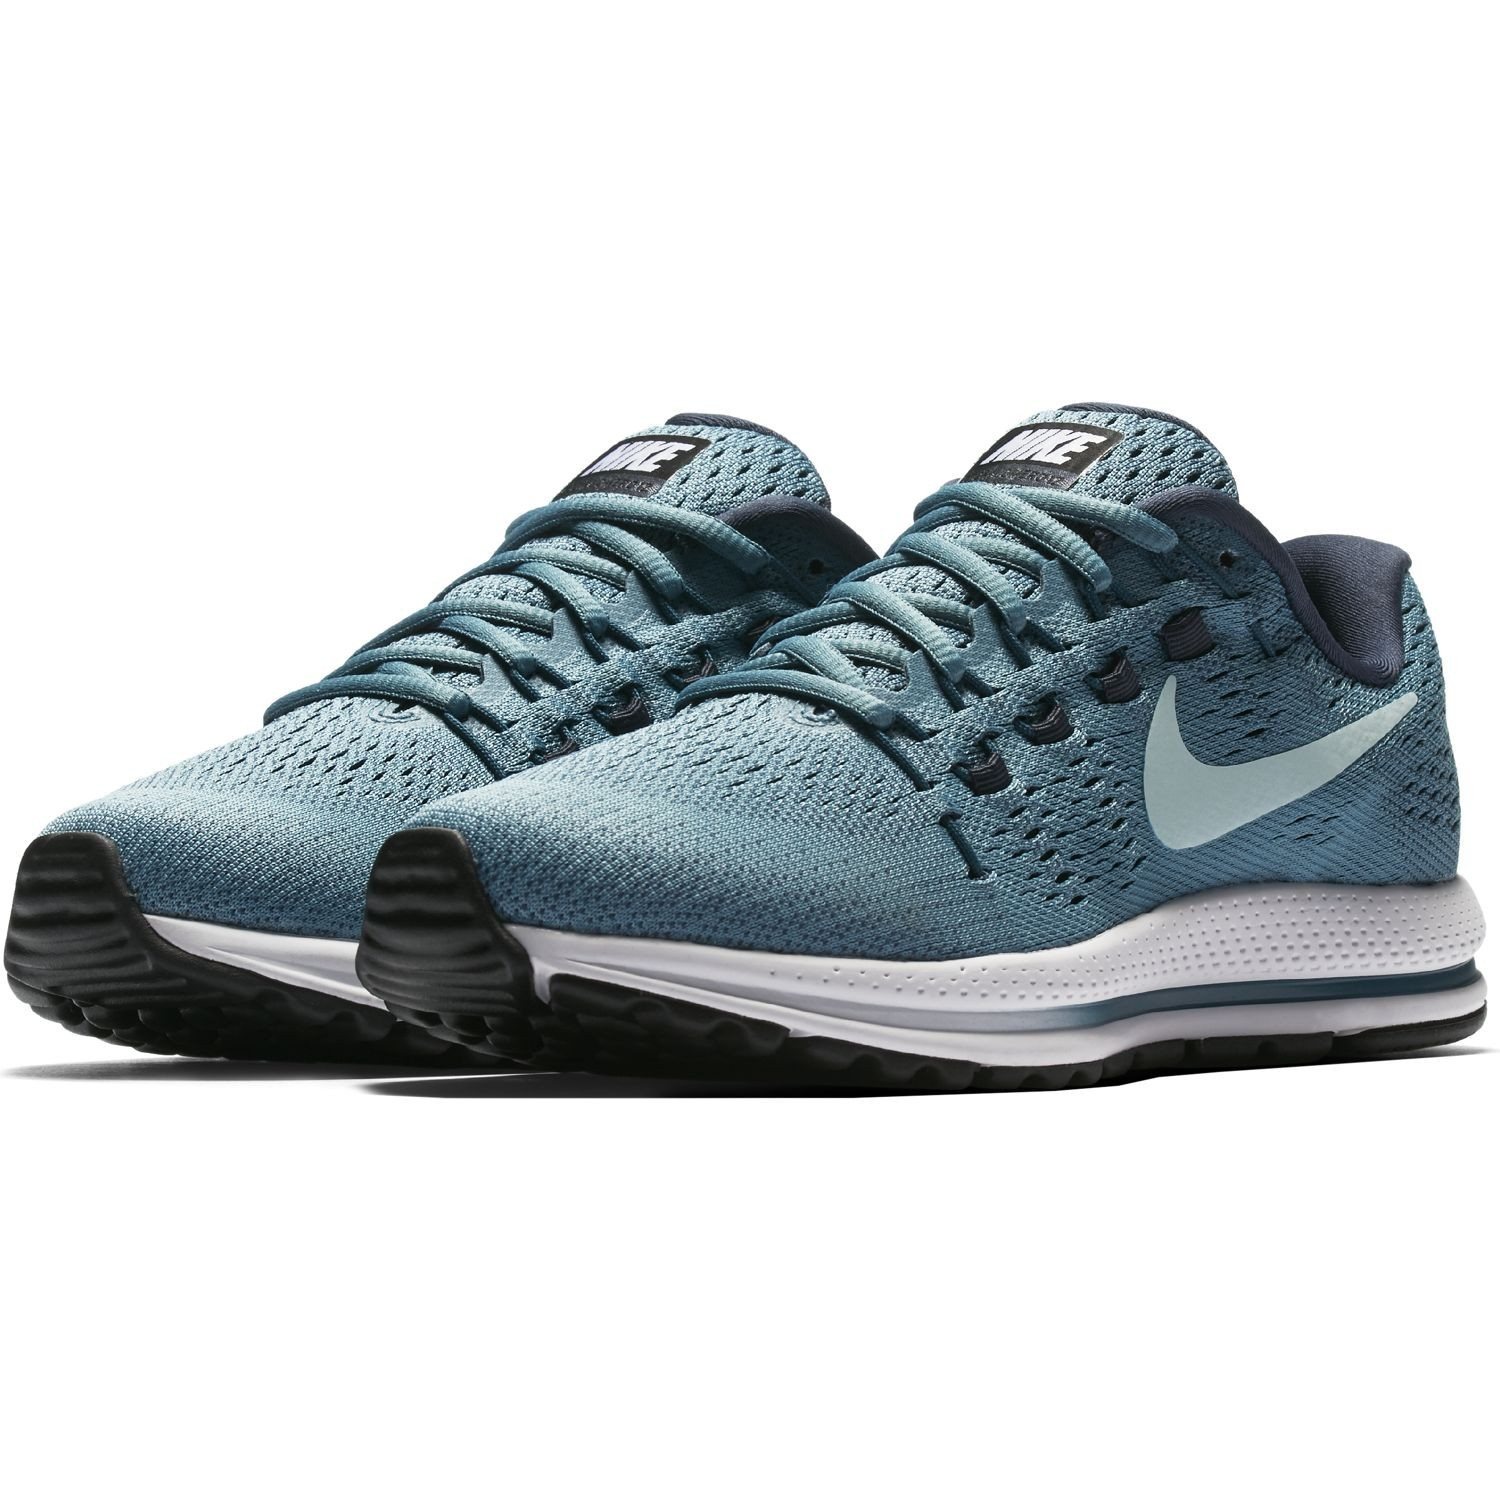 16d6745a861 comprar nike vomero 12 mujer